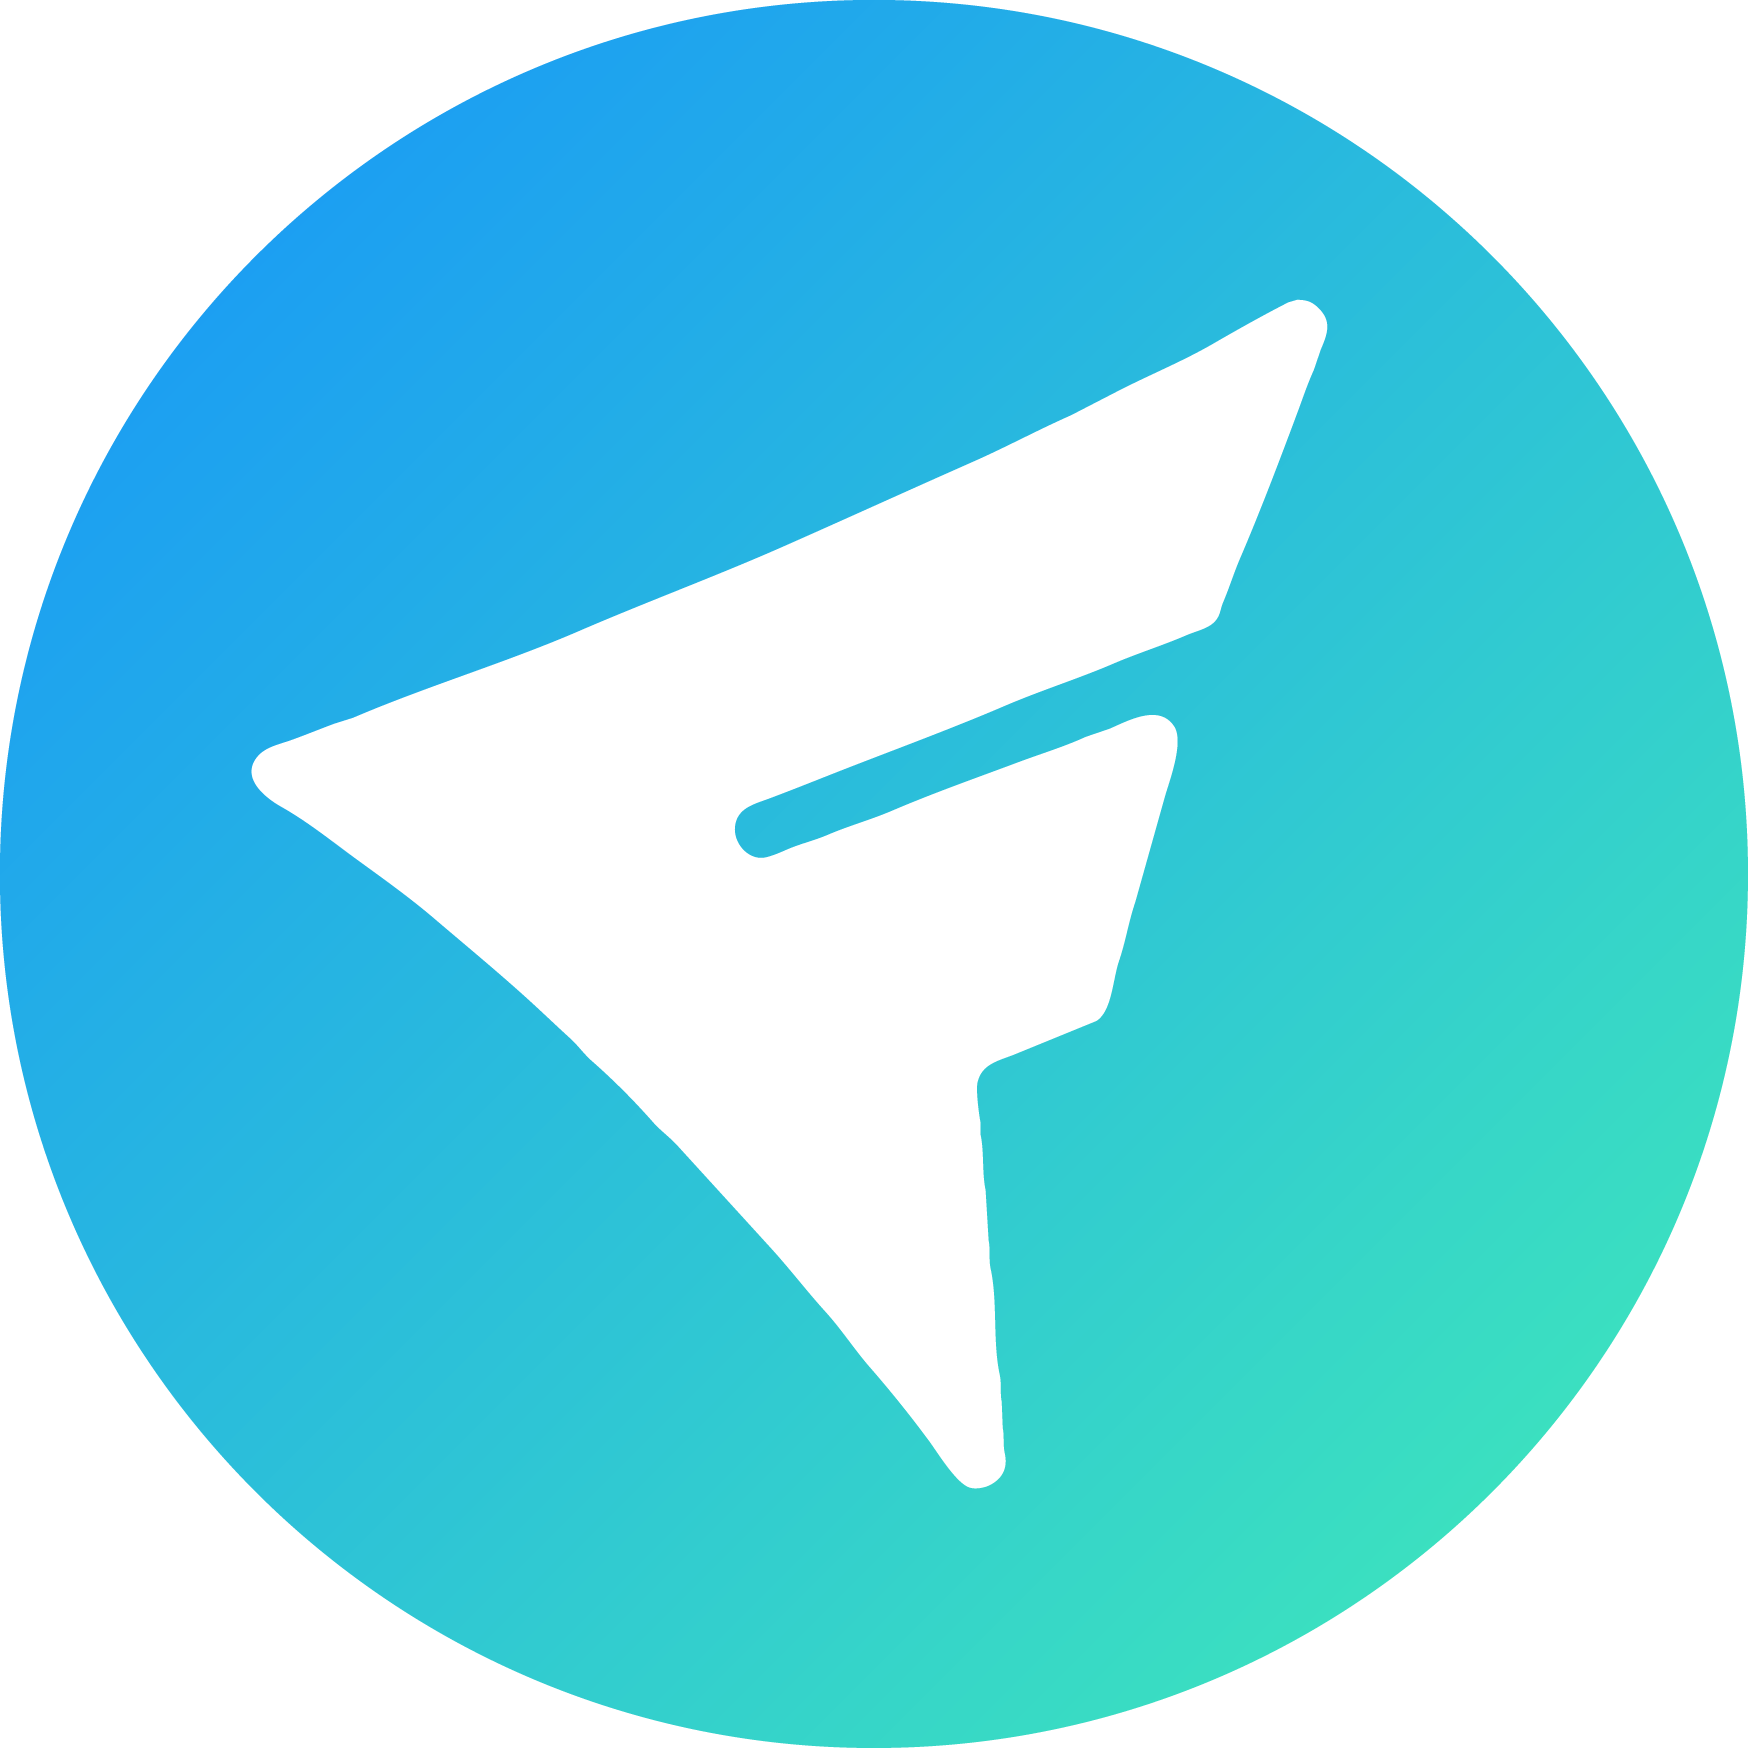 InvestFeed (IFT/USD)